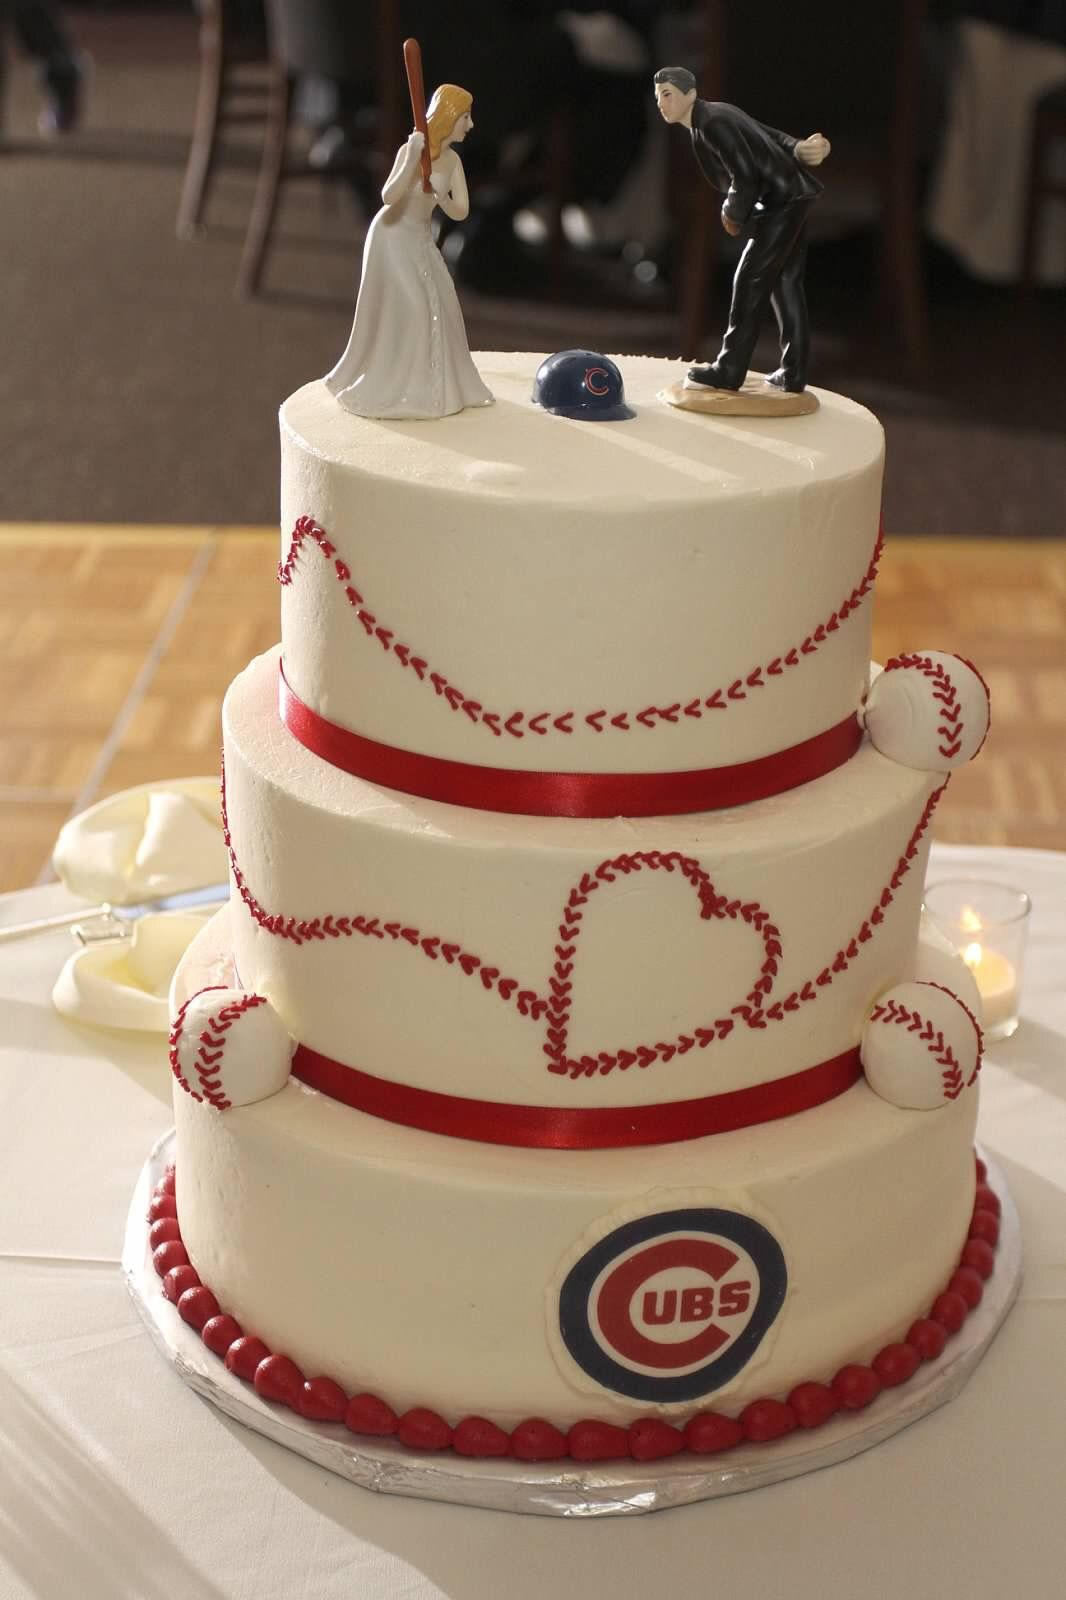 wedding cake chicago il chicago cubs baseball wedding cake chicago cubs 22191